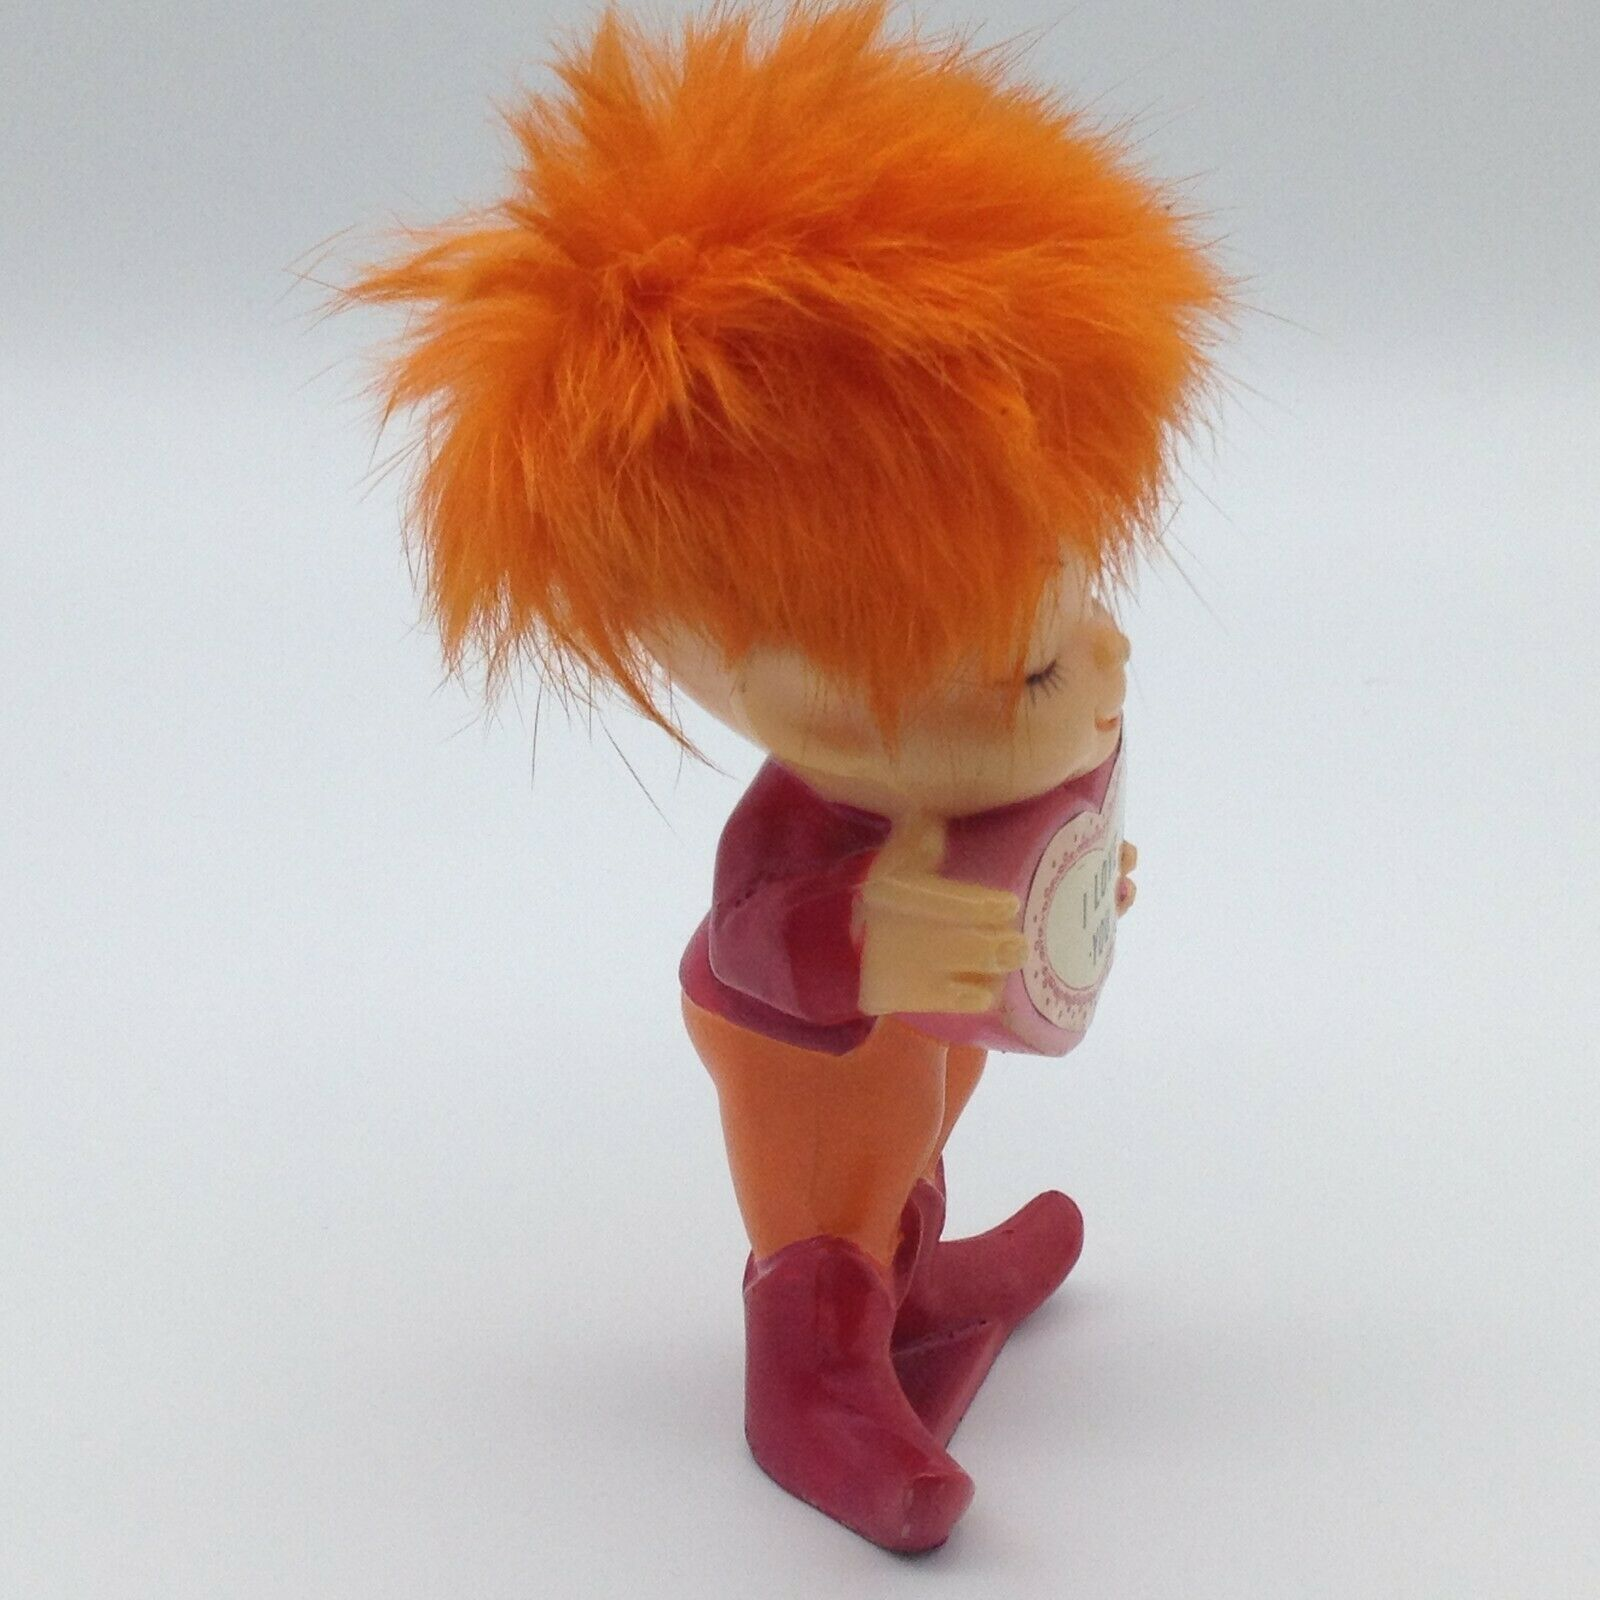 Vintage 1971 I love you Orange Hair Troll Pixie Berries Hong Kong Figurine